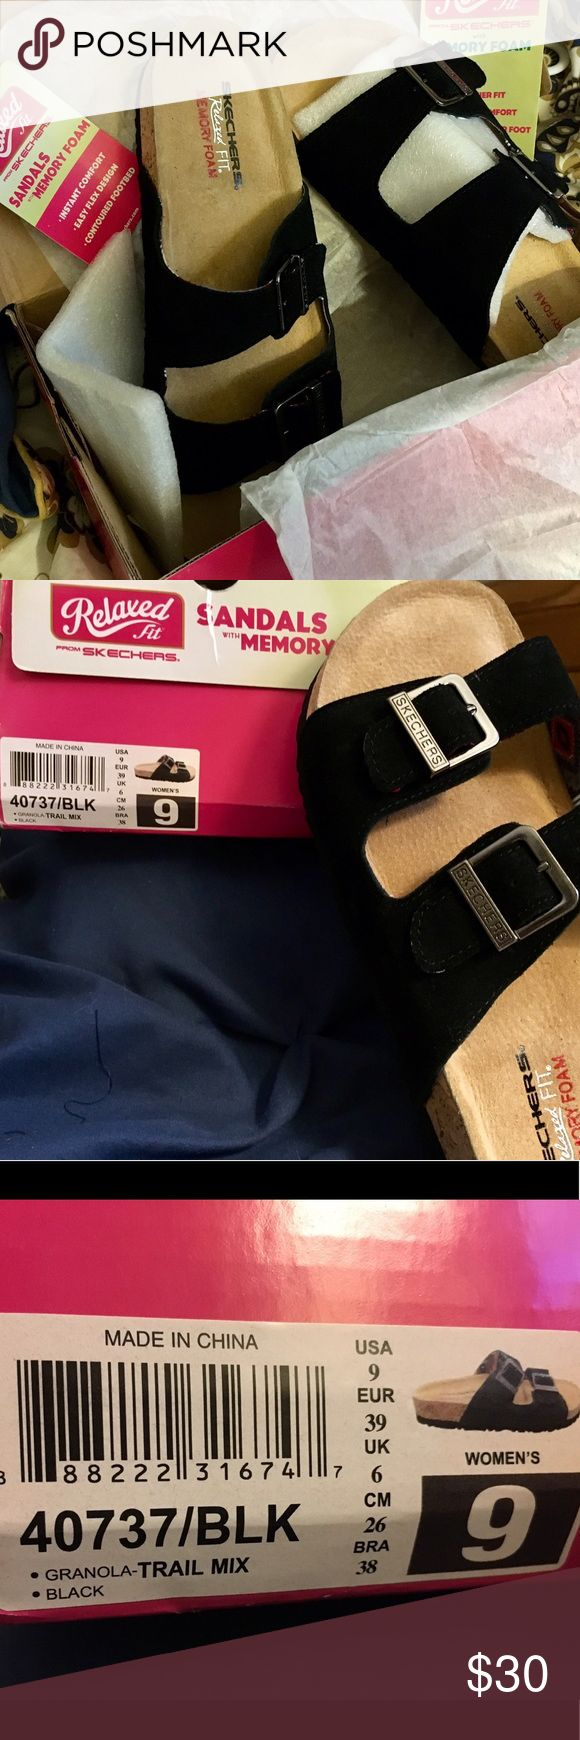 "Ladies' Size 9 Black Suede Slide Sandals! 🌲⛰🏕🌲Skechers ""Granola - Trail Mix"" Black Leather Memory Foam Sandals ~ Ladies' Size 9 ~ New in Box ~ Soft suede slide sandals combine classic style with modern memory foam ~ Featuring casual straps, adjustable metal buckles, and cushioned comfort insoles ~ Now, go take a hike! When your feet meet this foam, you won't need to go home!🌲⛰🏕🌲 Skechers Shoes Sandals"